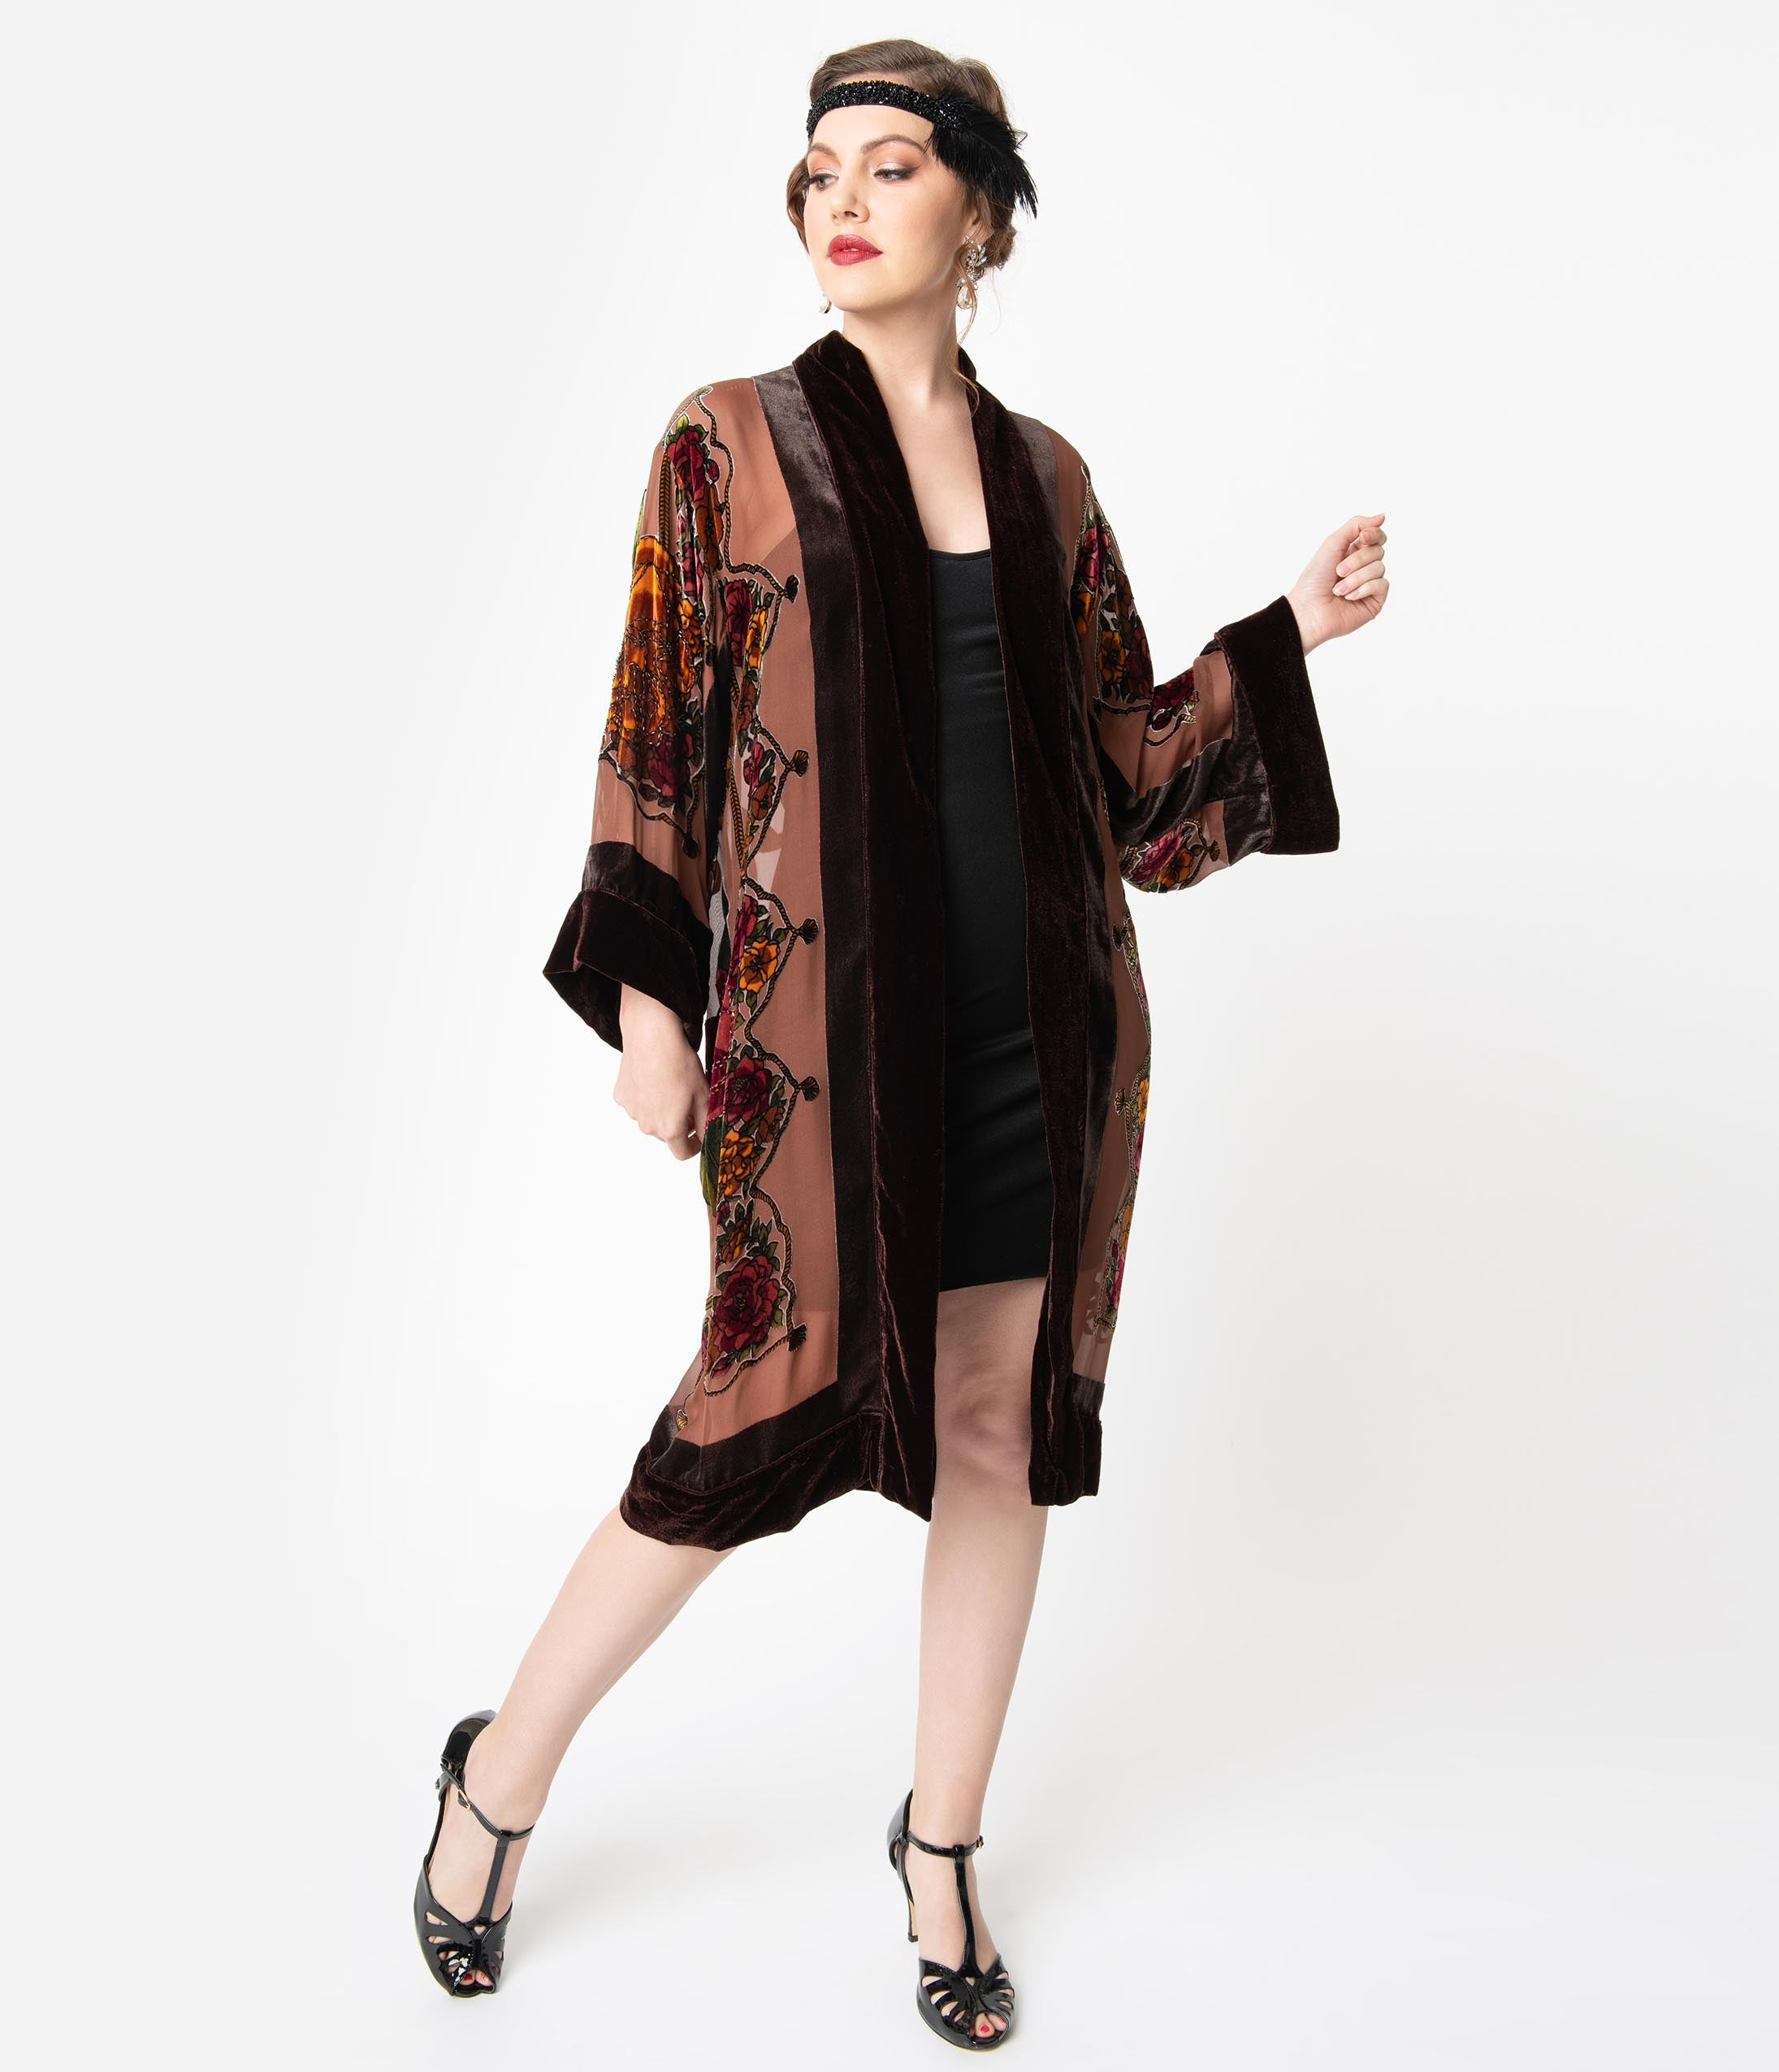 Vintage Coats & Jackets | Retro Coats and Jackets 1920S Style Brown Burnout Velvet Beaded Floral Flapper Coat $238.00 AT vintagedancer.com